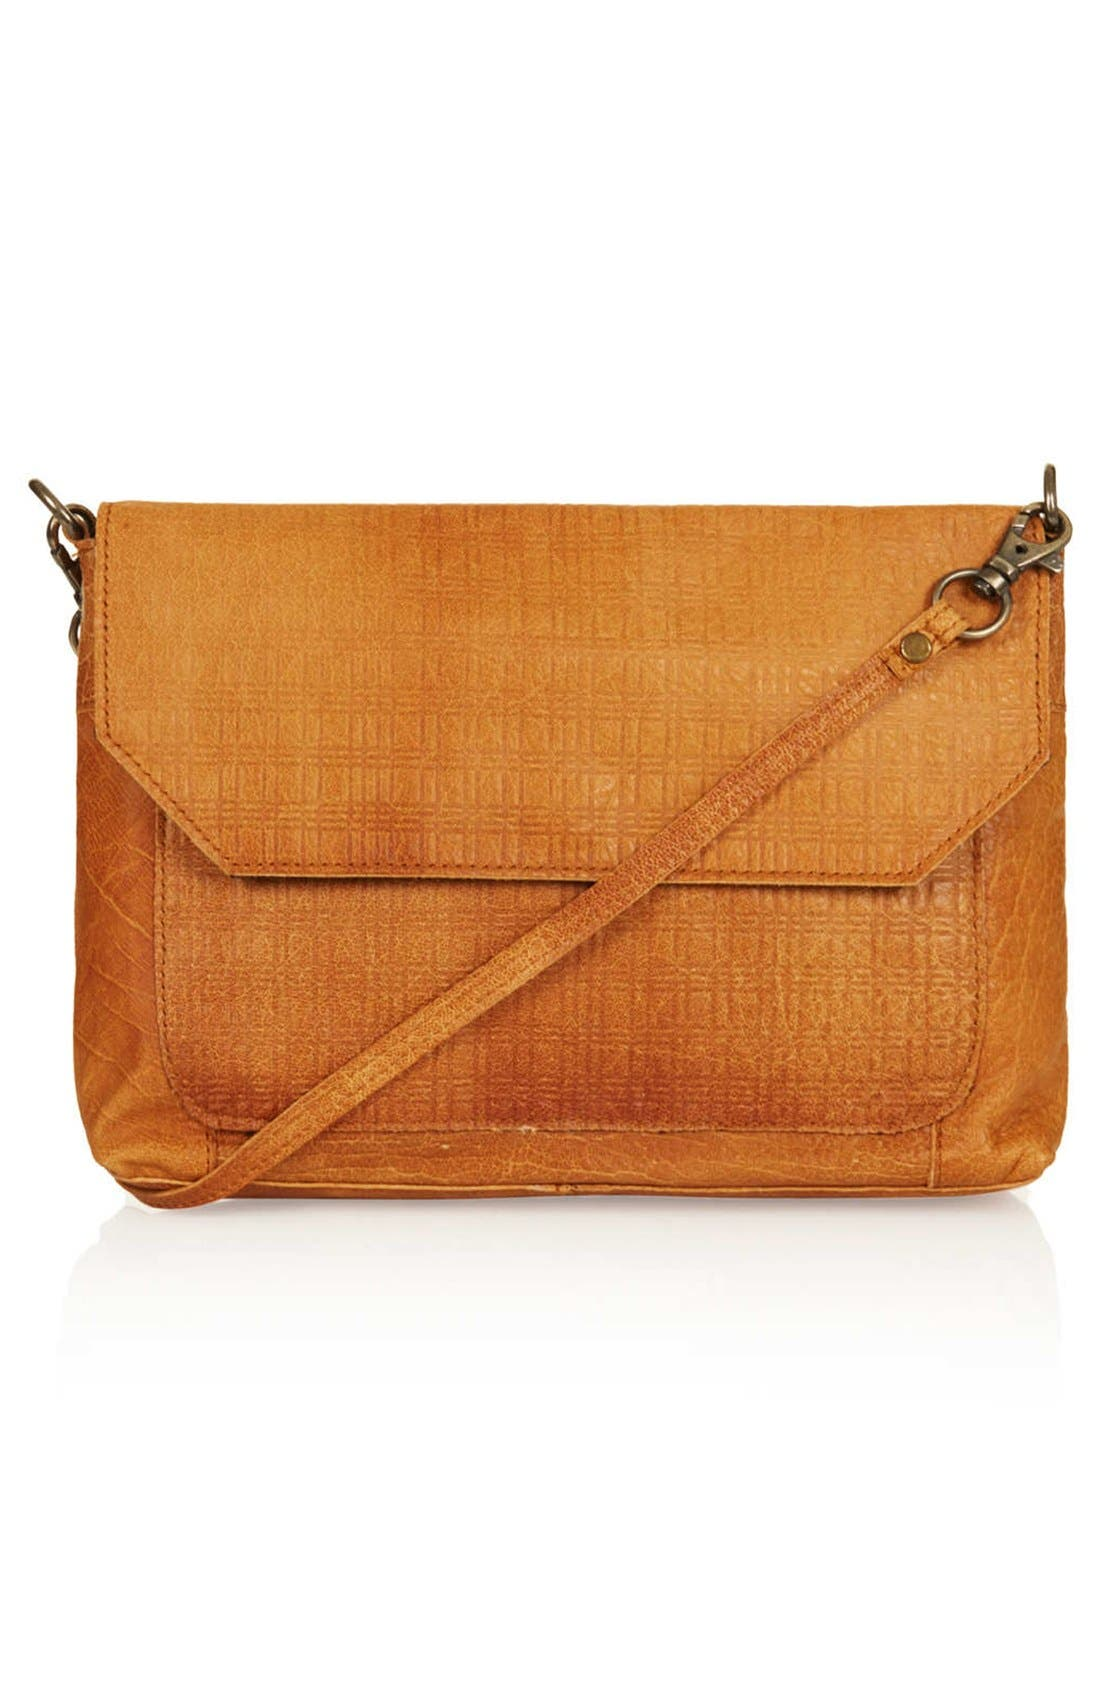 Alternate Image 1 Selected - Topshop Textured Leather Crossbody Bag